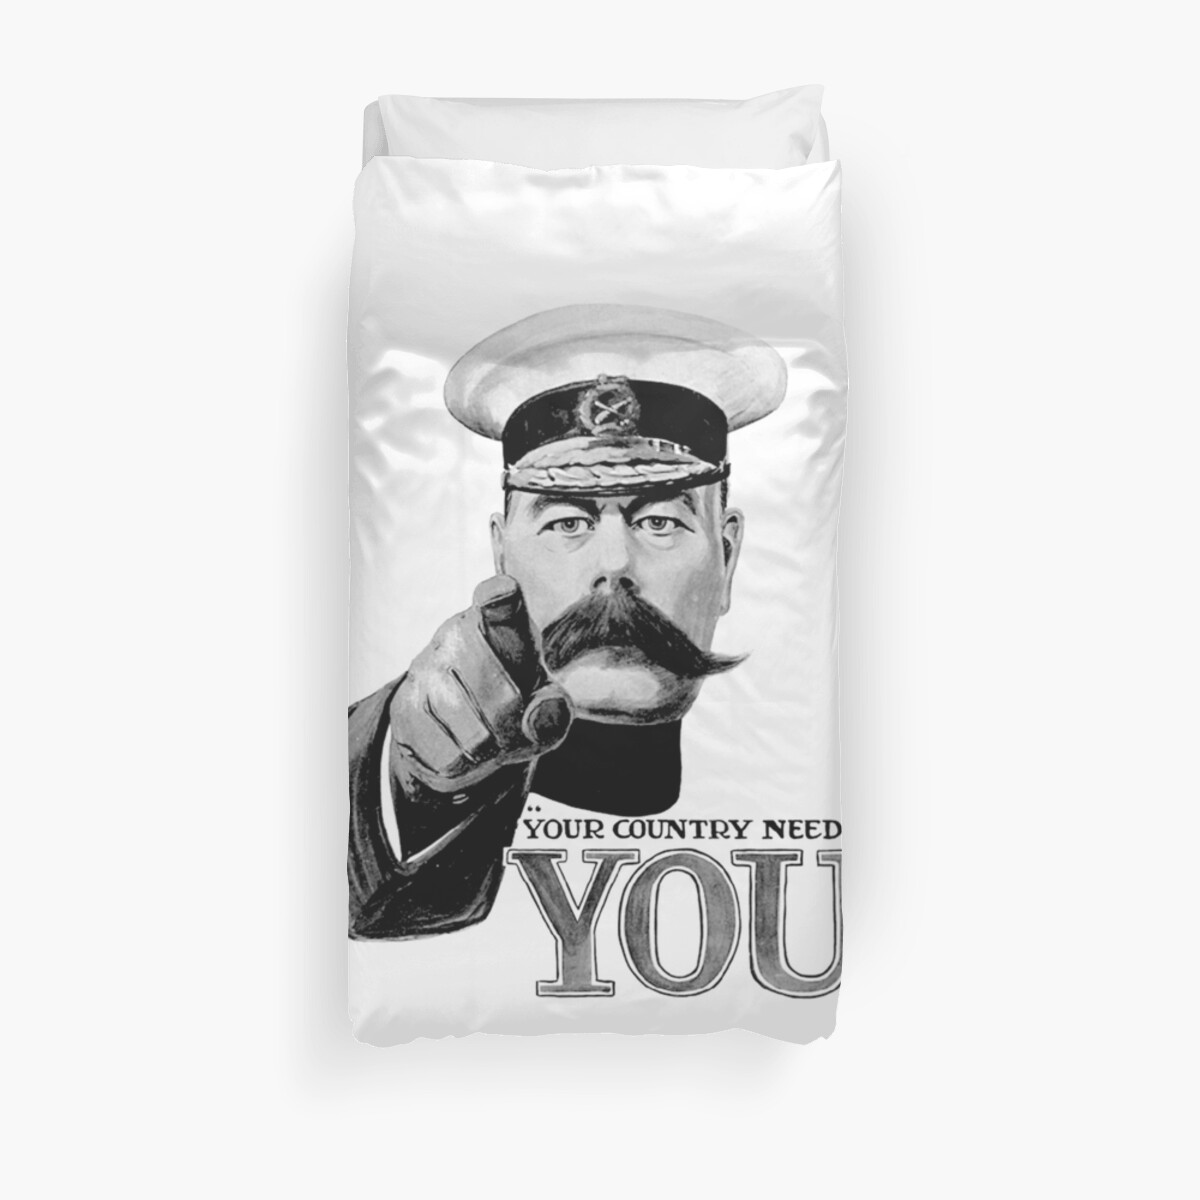 World War One, Lord Kitchener, WW1, Your Country needs you ...